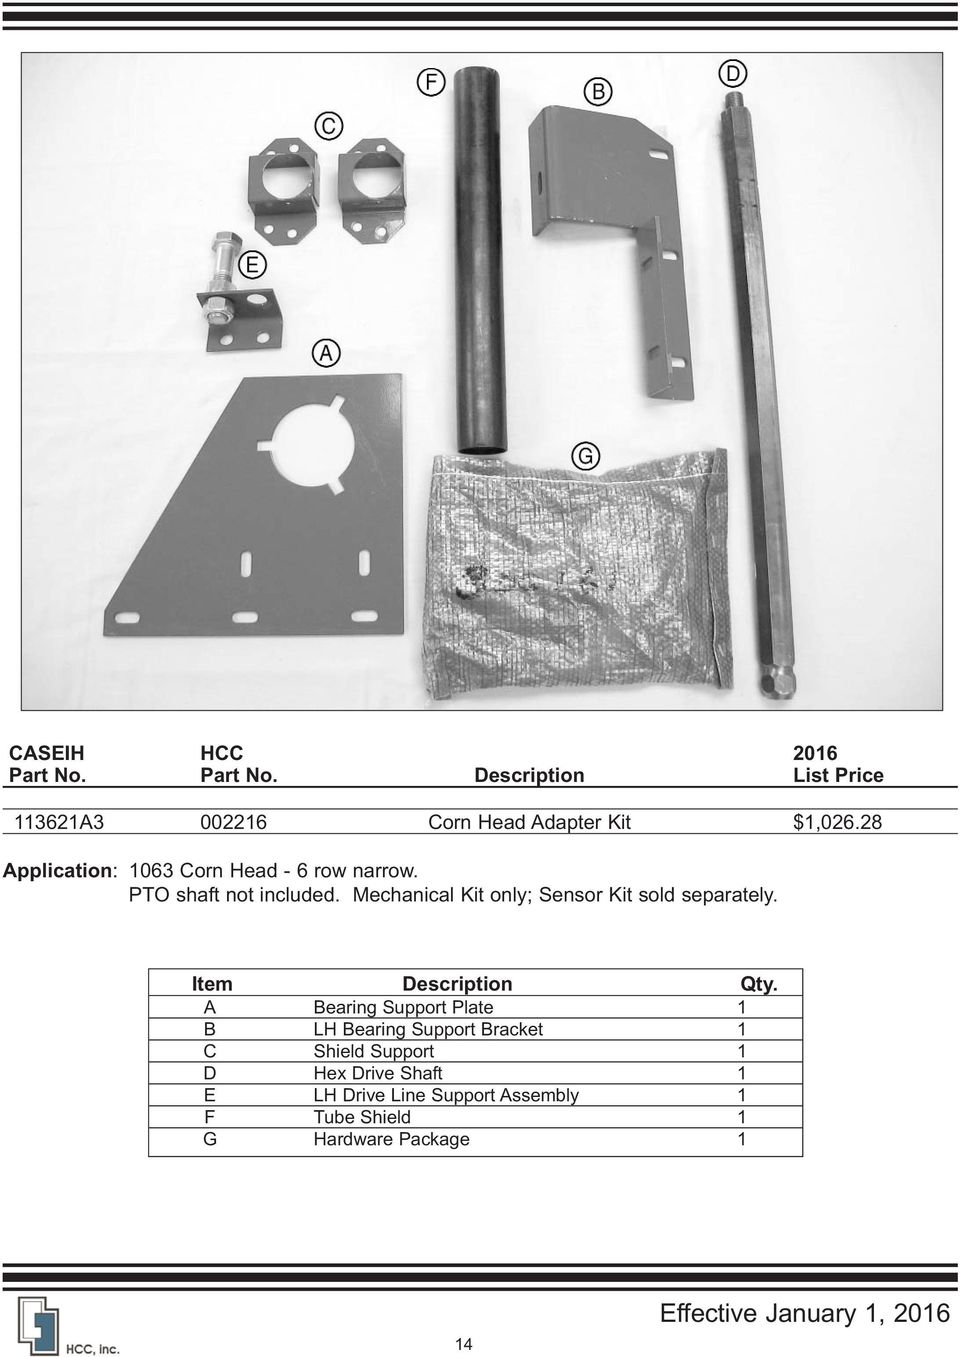 Field Tracker For Caseih Combines Pdf Corn Pro Wiring Diagram Mechanical Kit Only Sensor Sold Separately